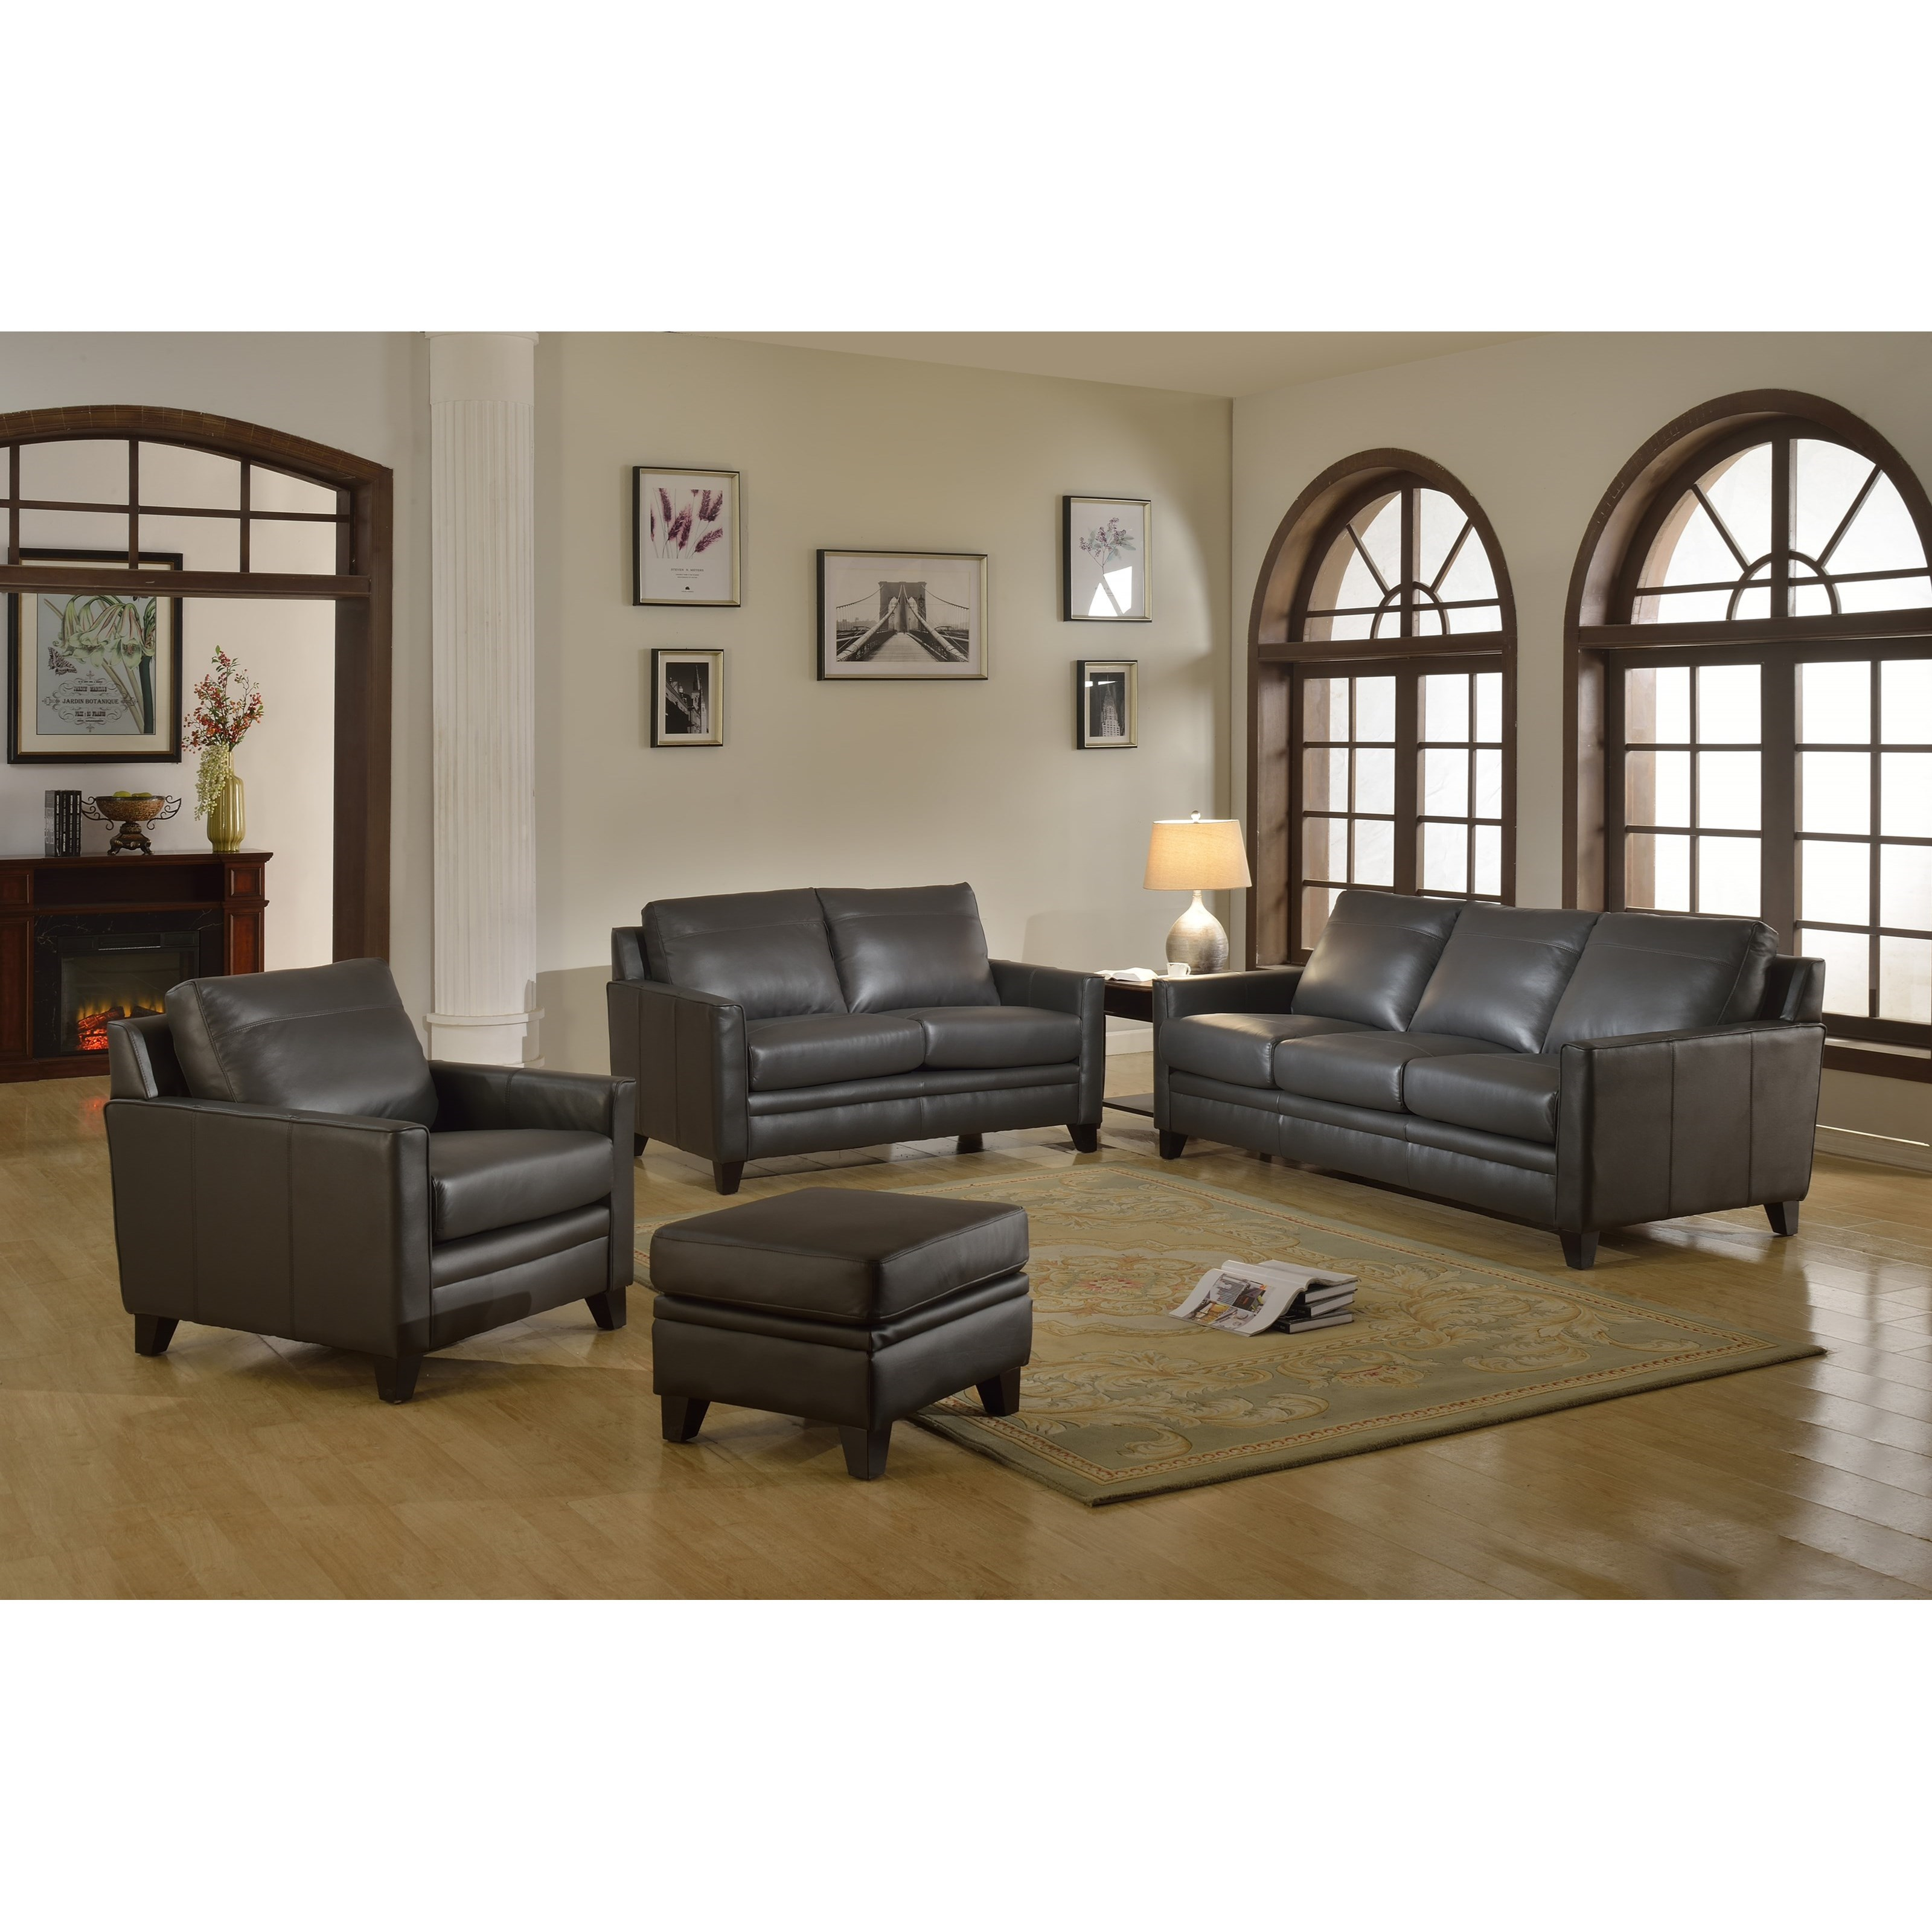 Fletcher Leather Living Room Group by Leather Italia USA at Lagniappe Home Store